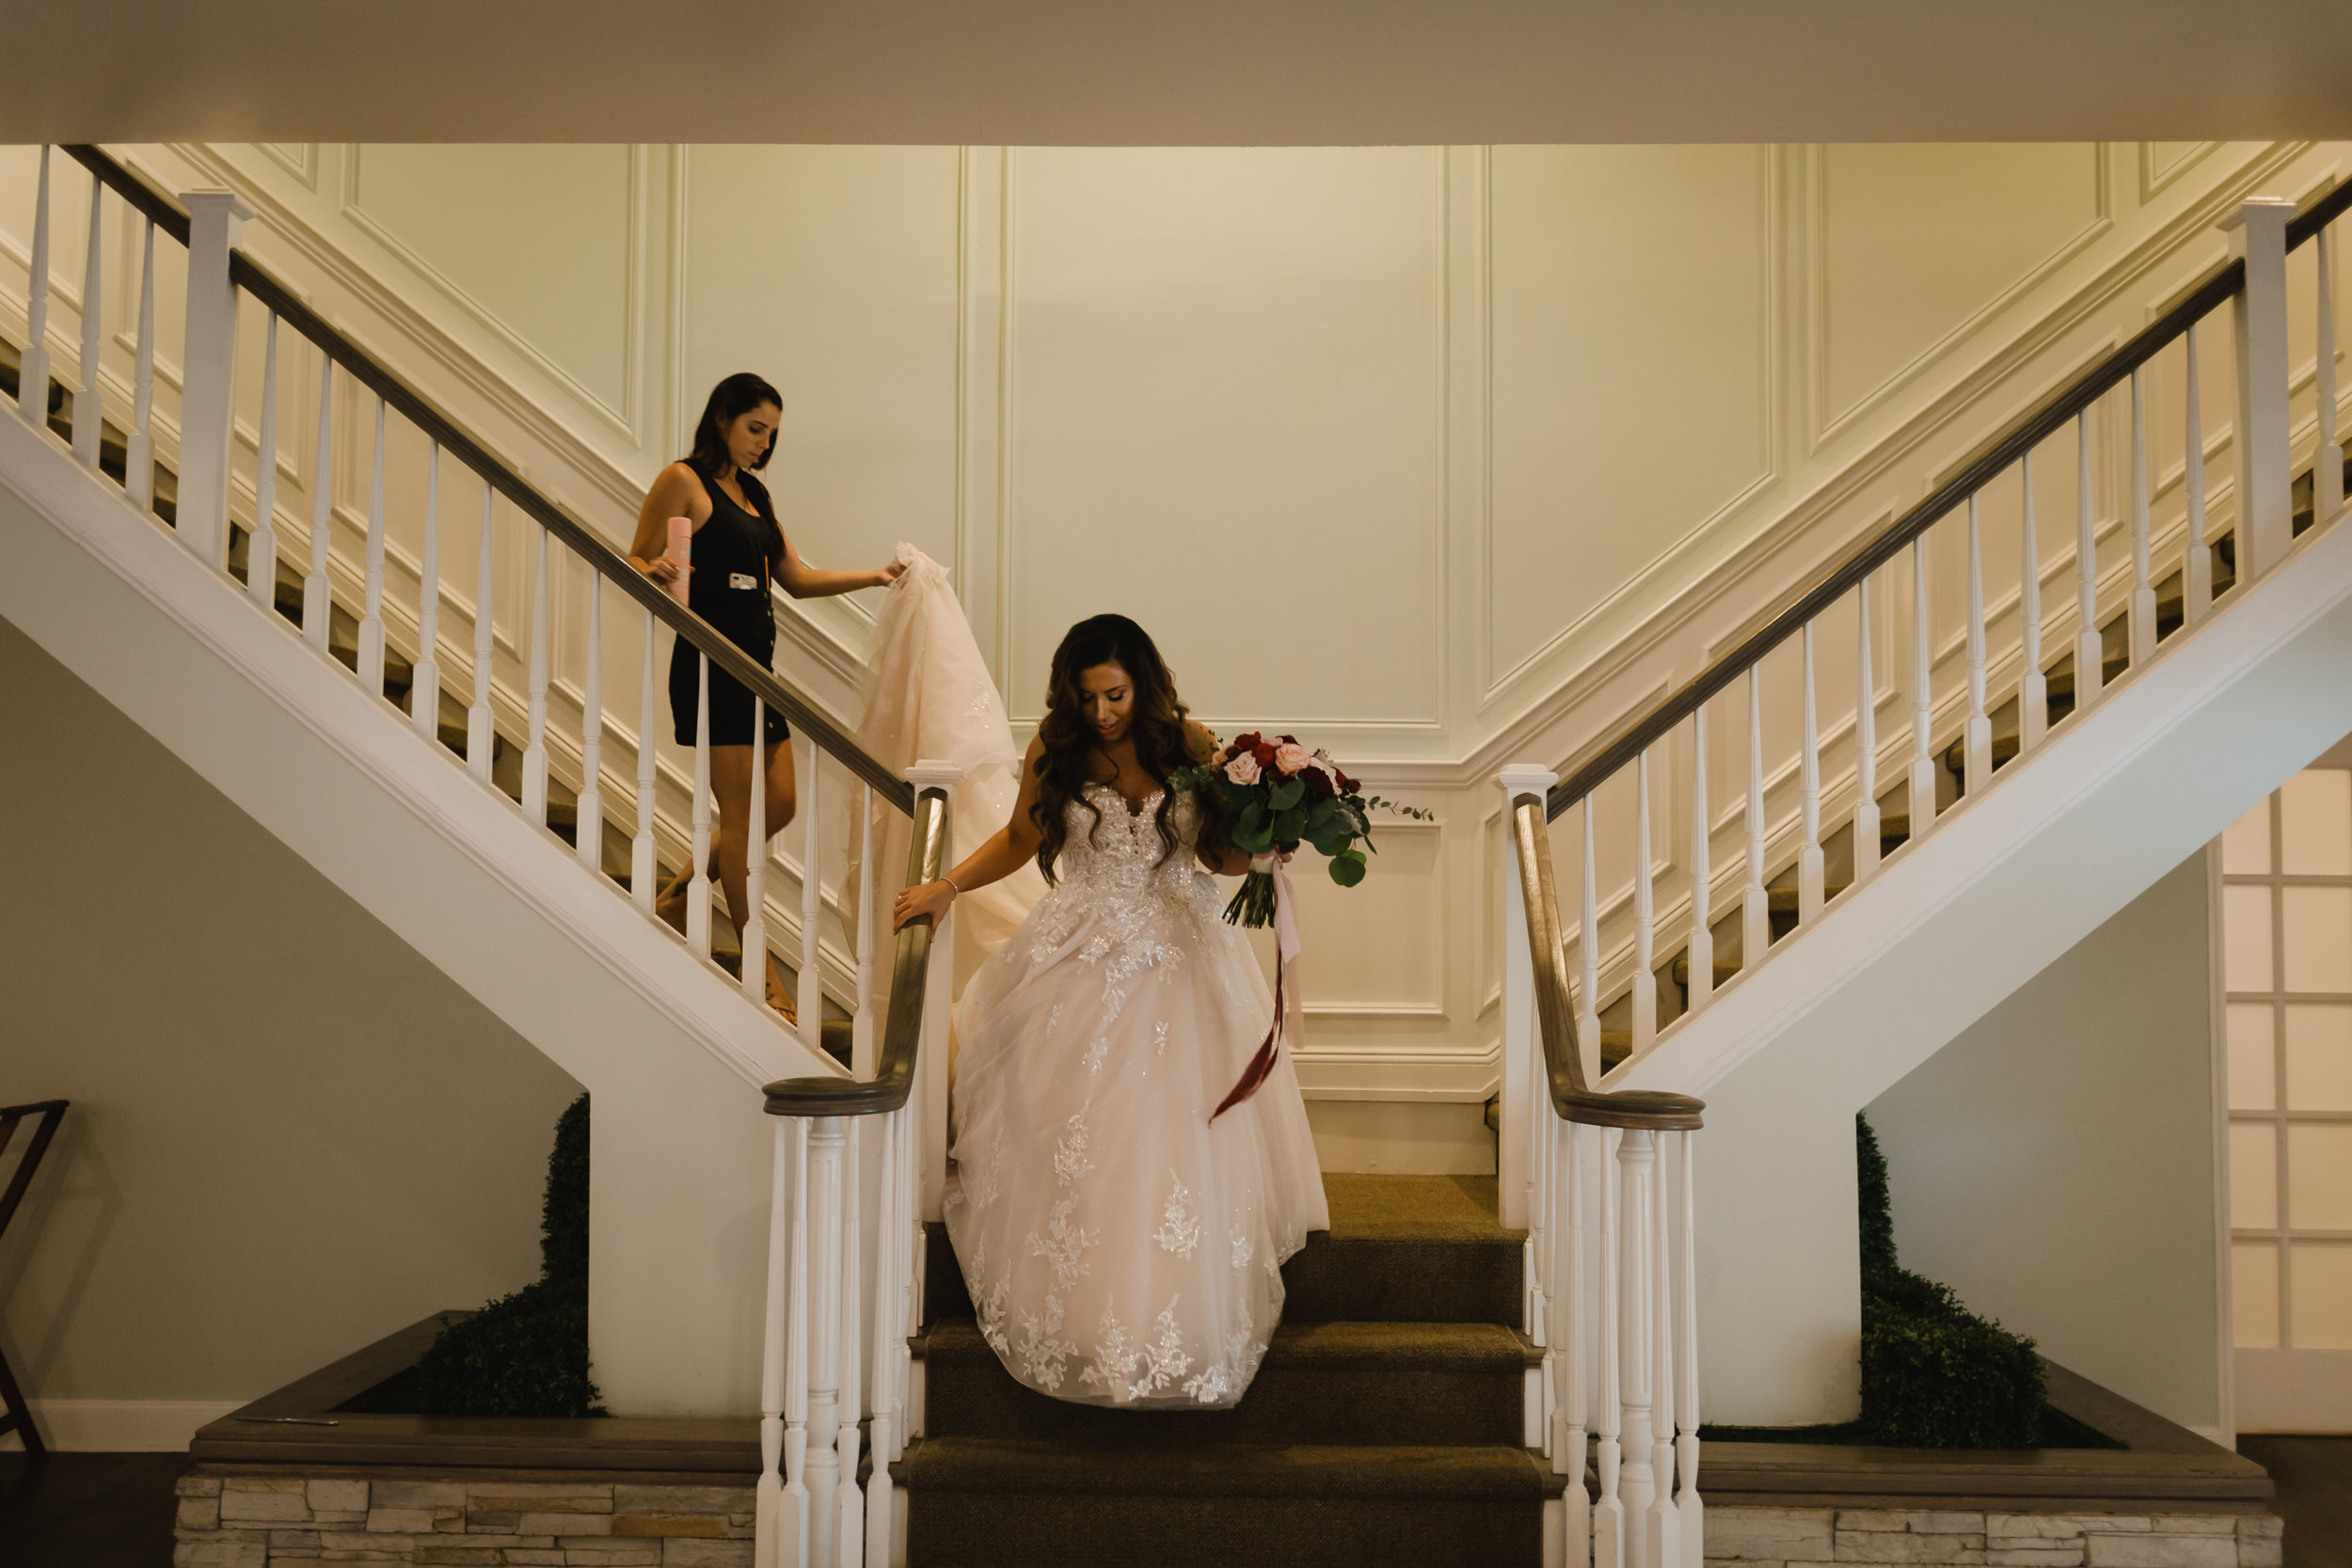 Gianna Keiko Atlanta NYC California Wedding Photographer_Sneak Peek-22.jpg